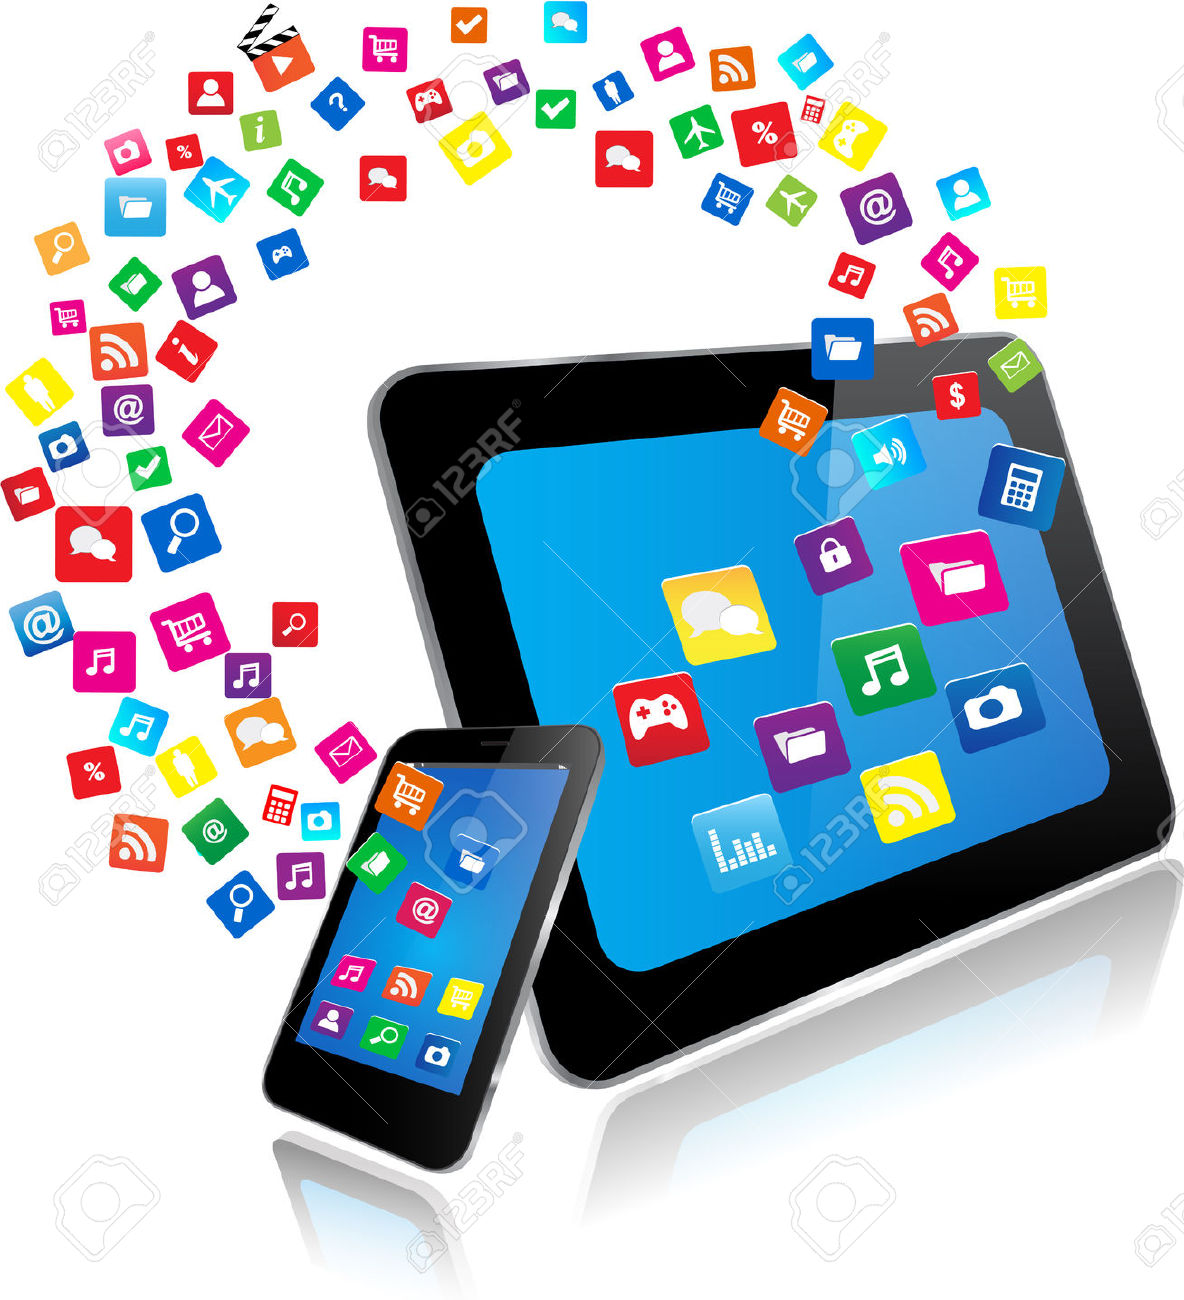 Tablet-PC-and-Smart-Phone-with-apps-Stock-Vector-mobile-learning-apps